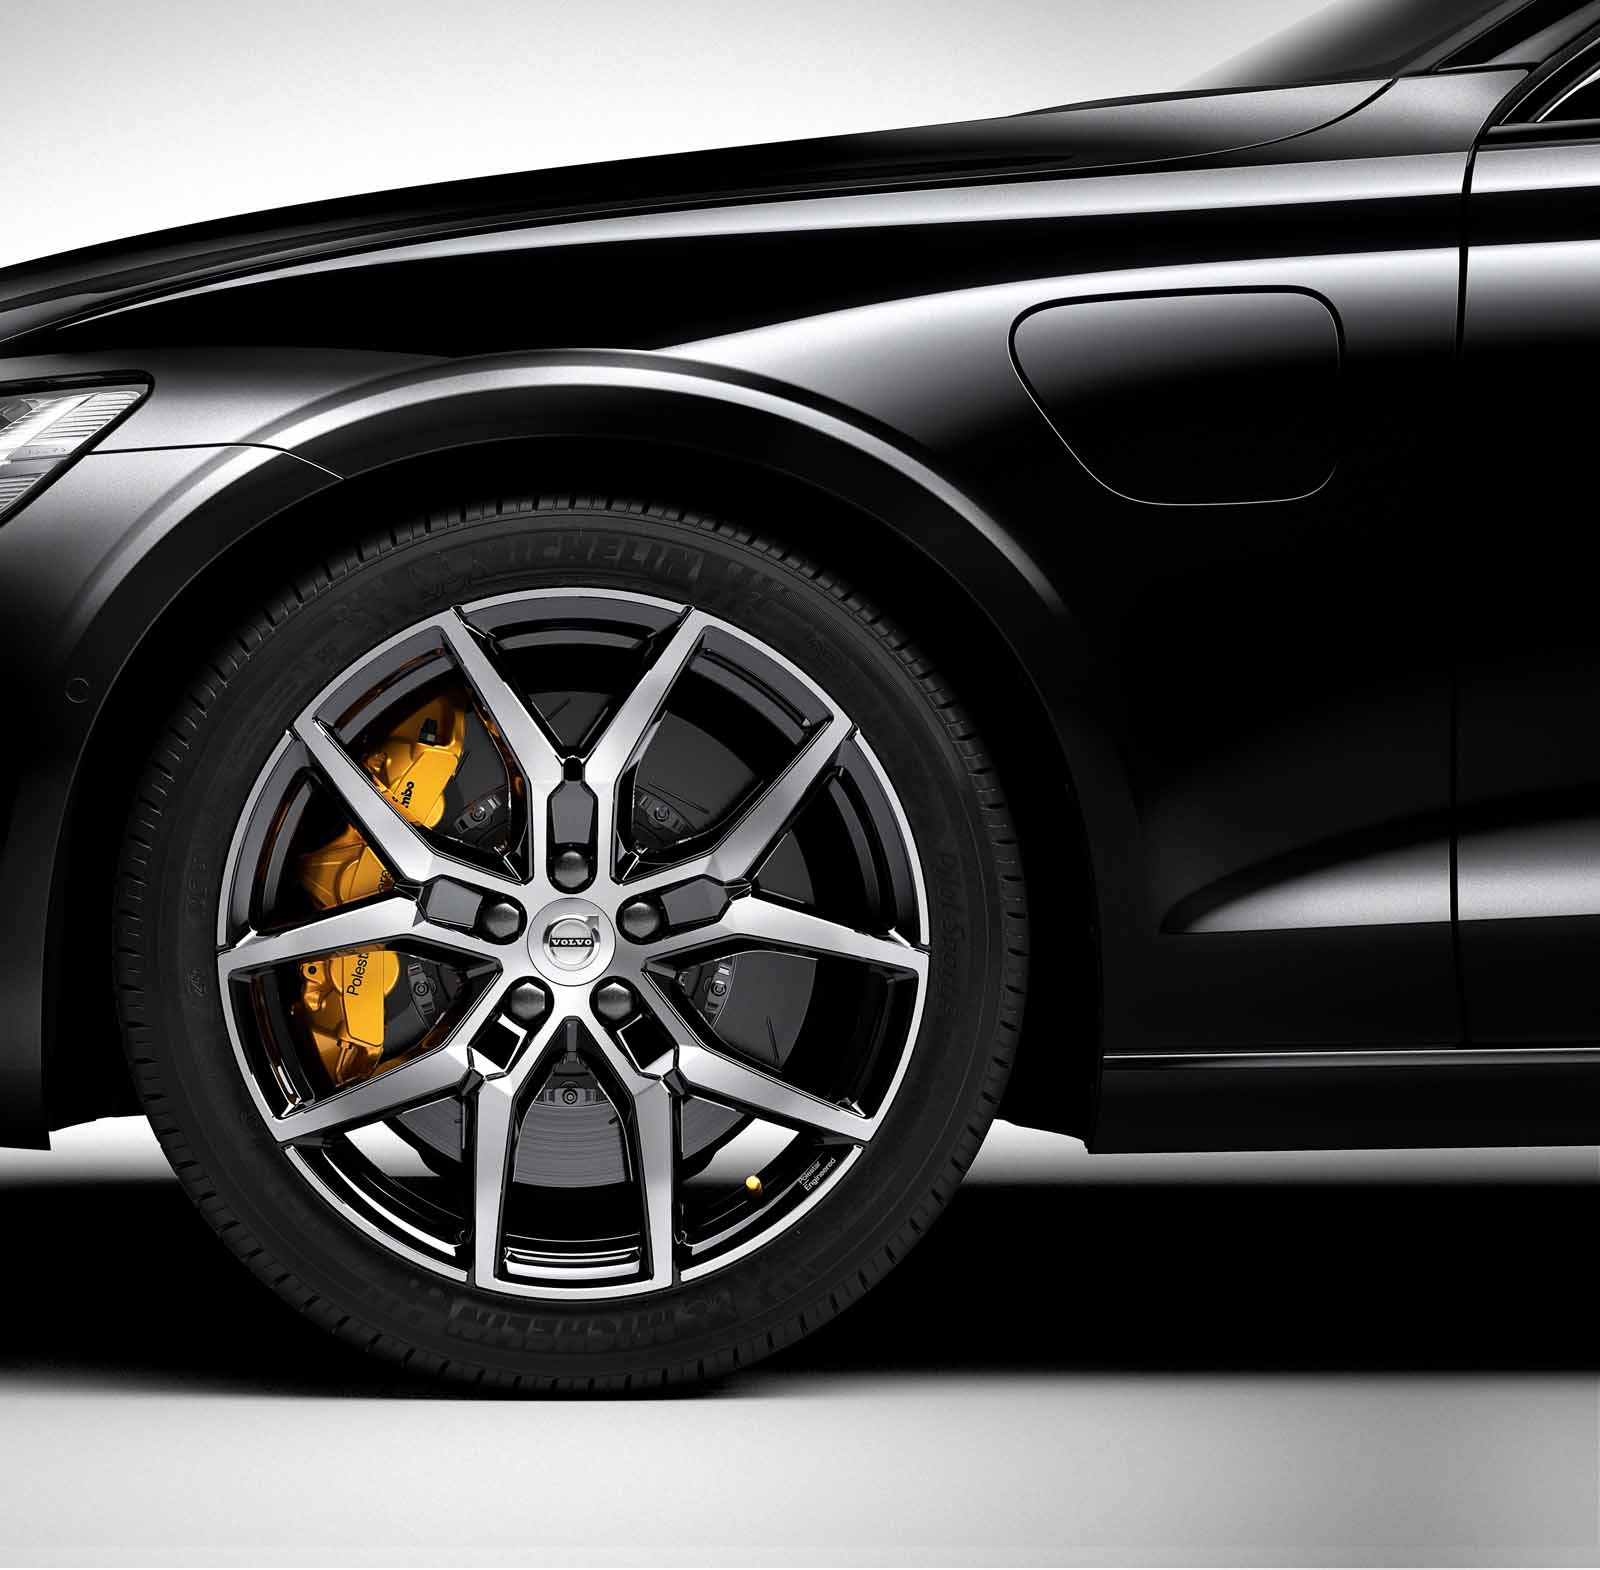 Volvo Xc60 T8 Hybrid Youtube: Volvo Announces Plug-In Hybrid 'Polestar Engineered' XC60